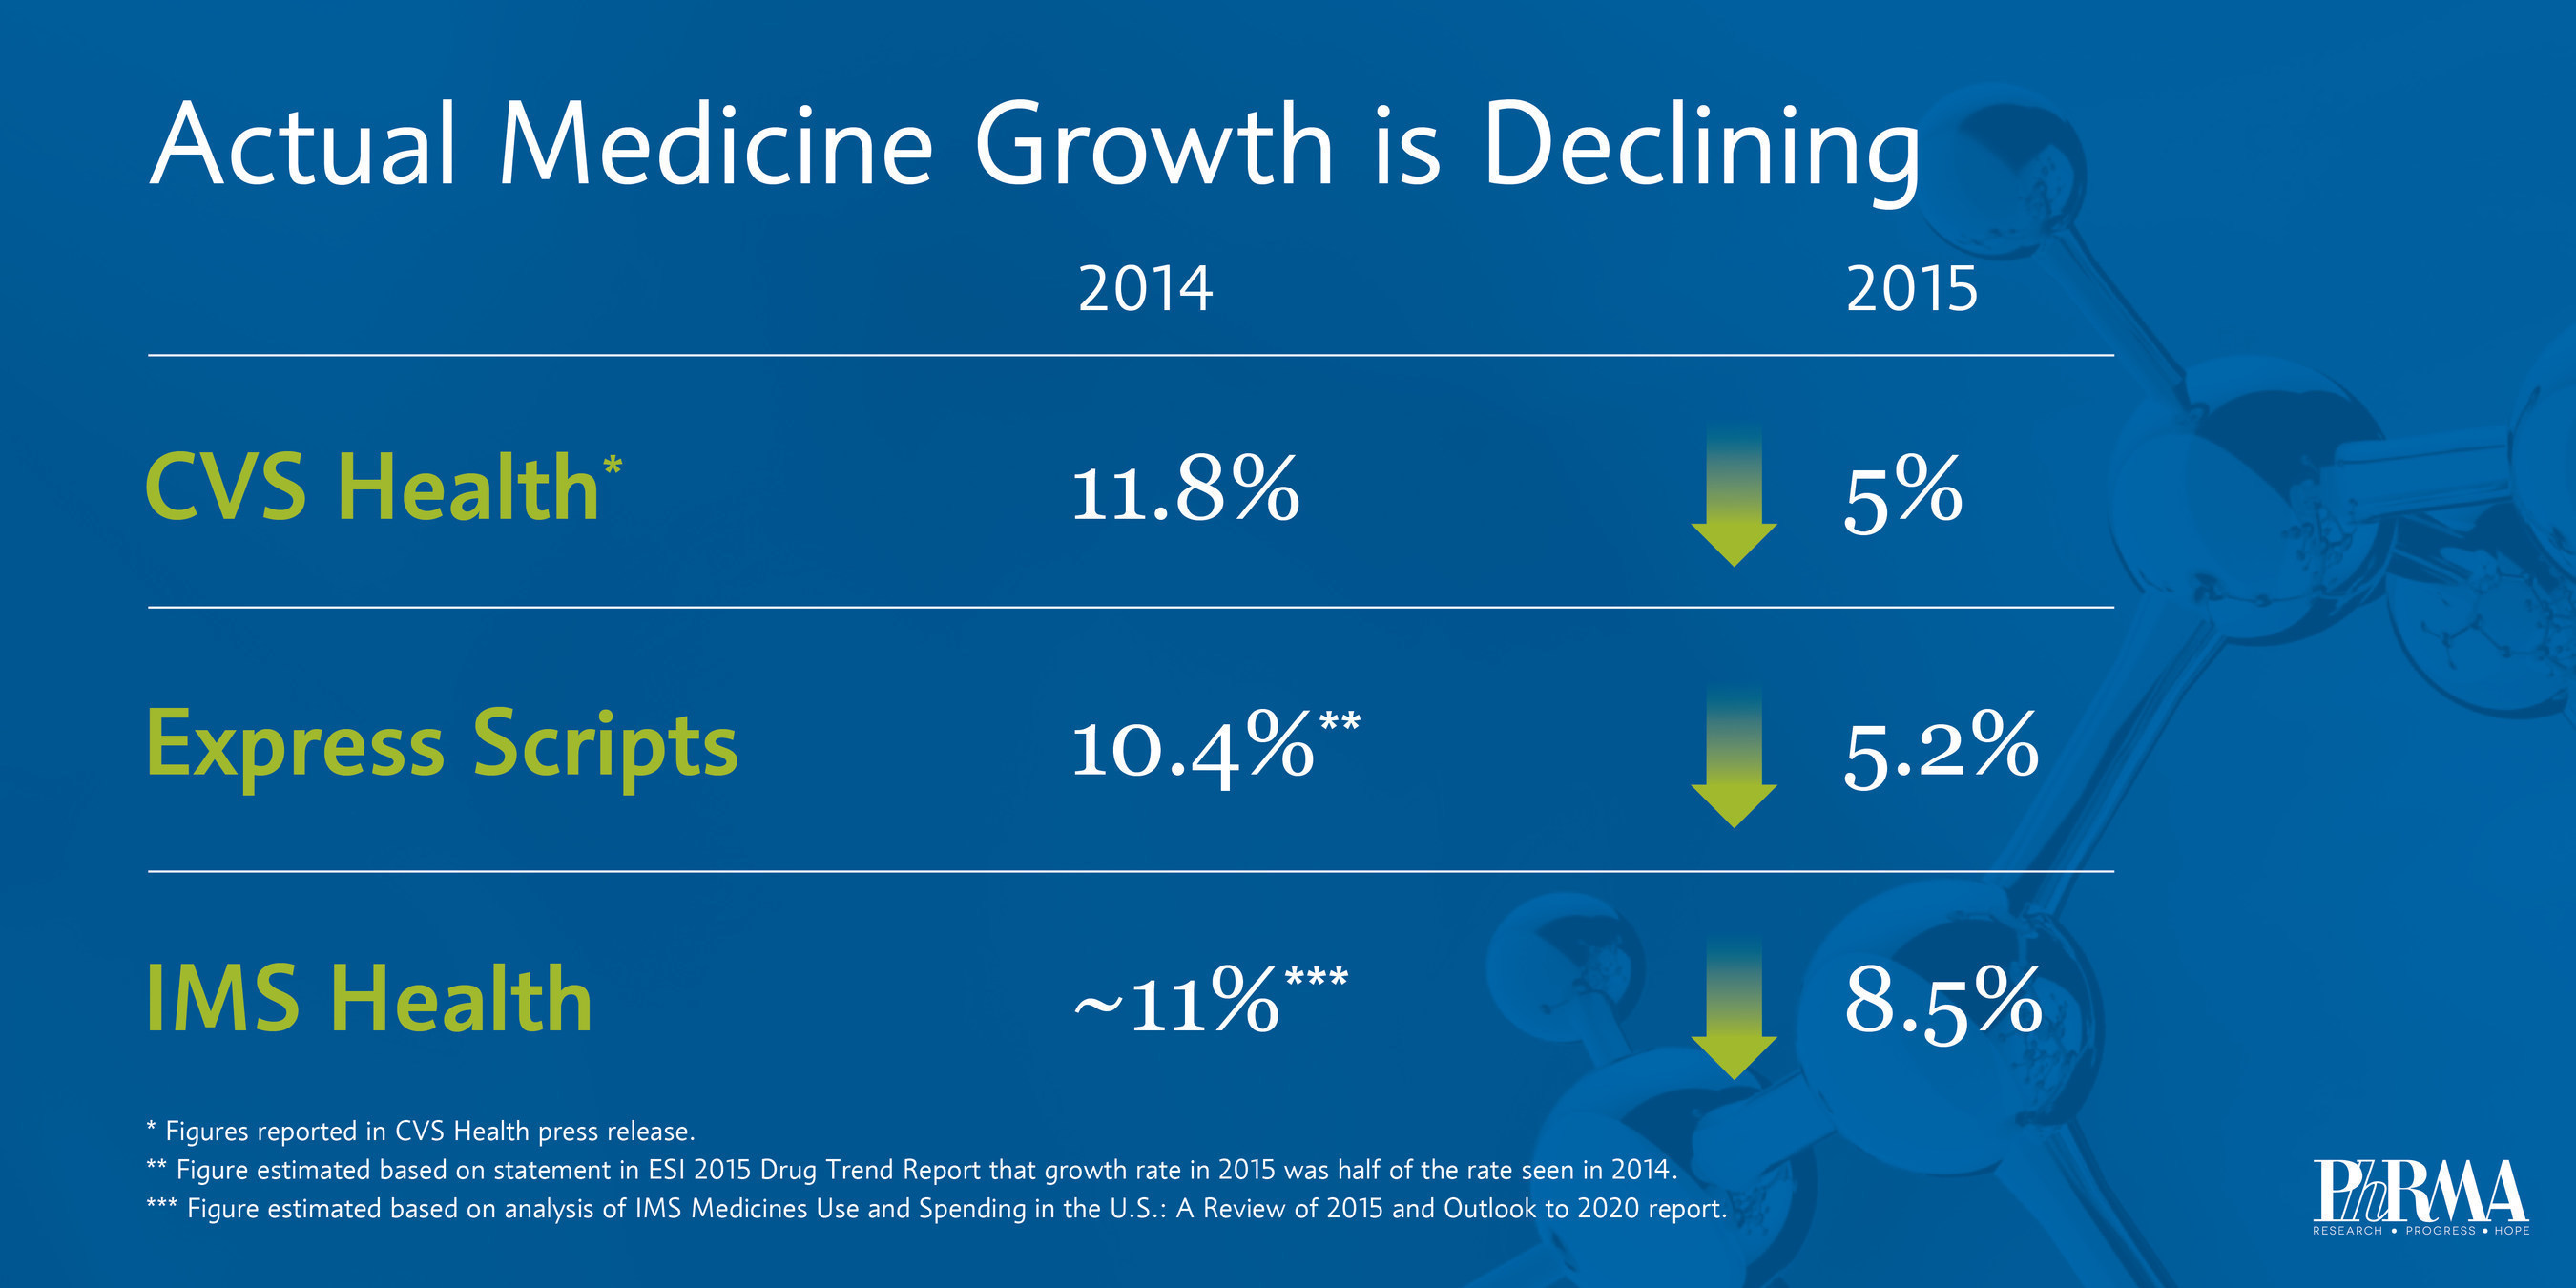 Actual medicine growth is declining.